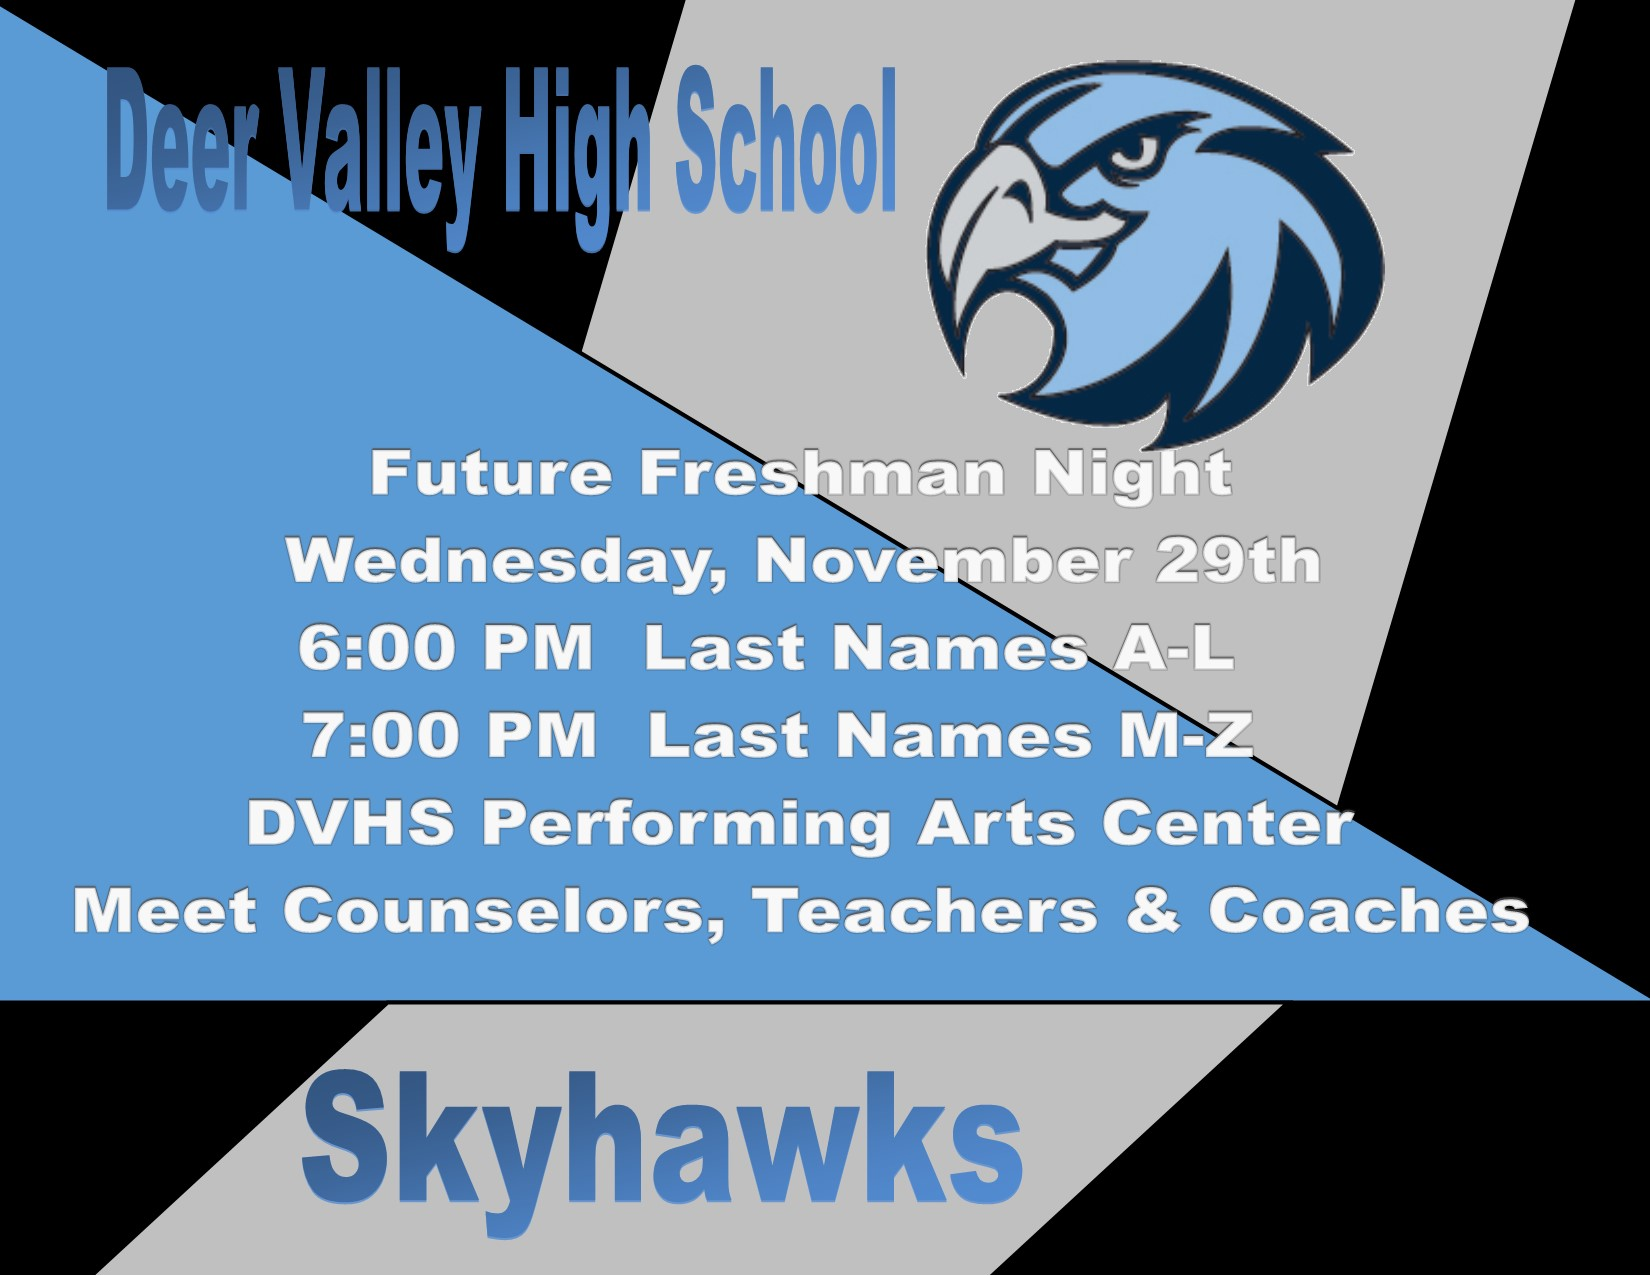 Future Freshman Night – Wednesday, 11/29/17